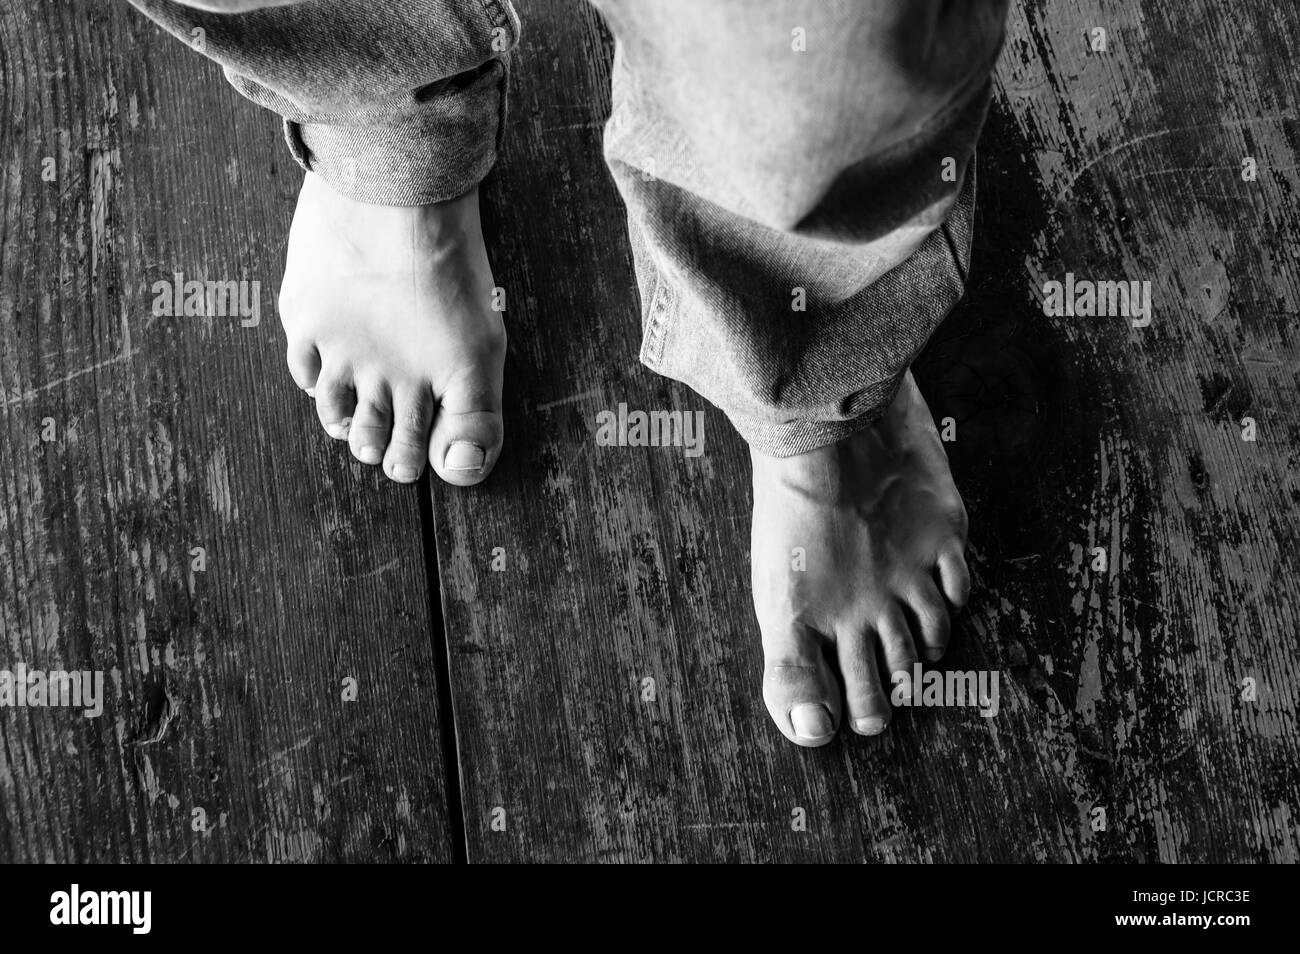 Close Up of Woman Bare Feet on Wooden Floor - Stock Image